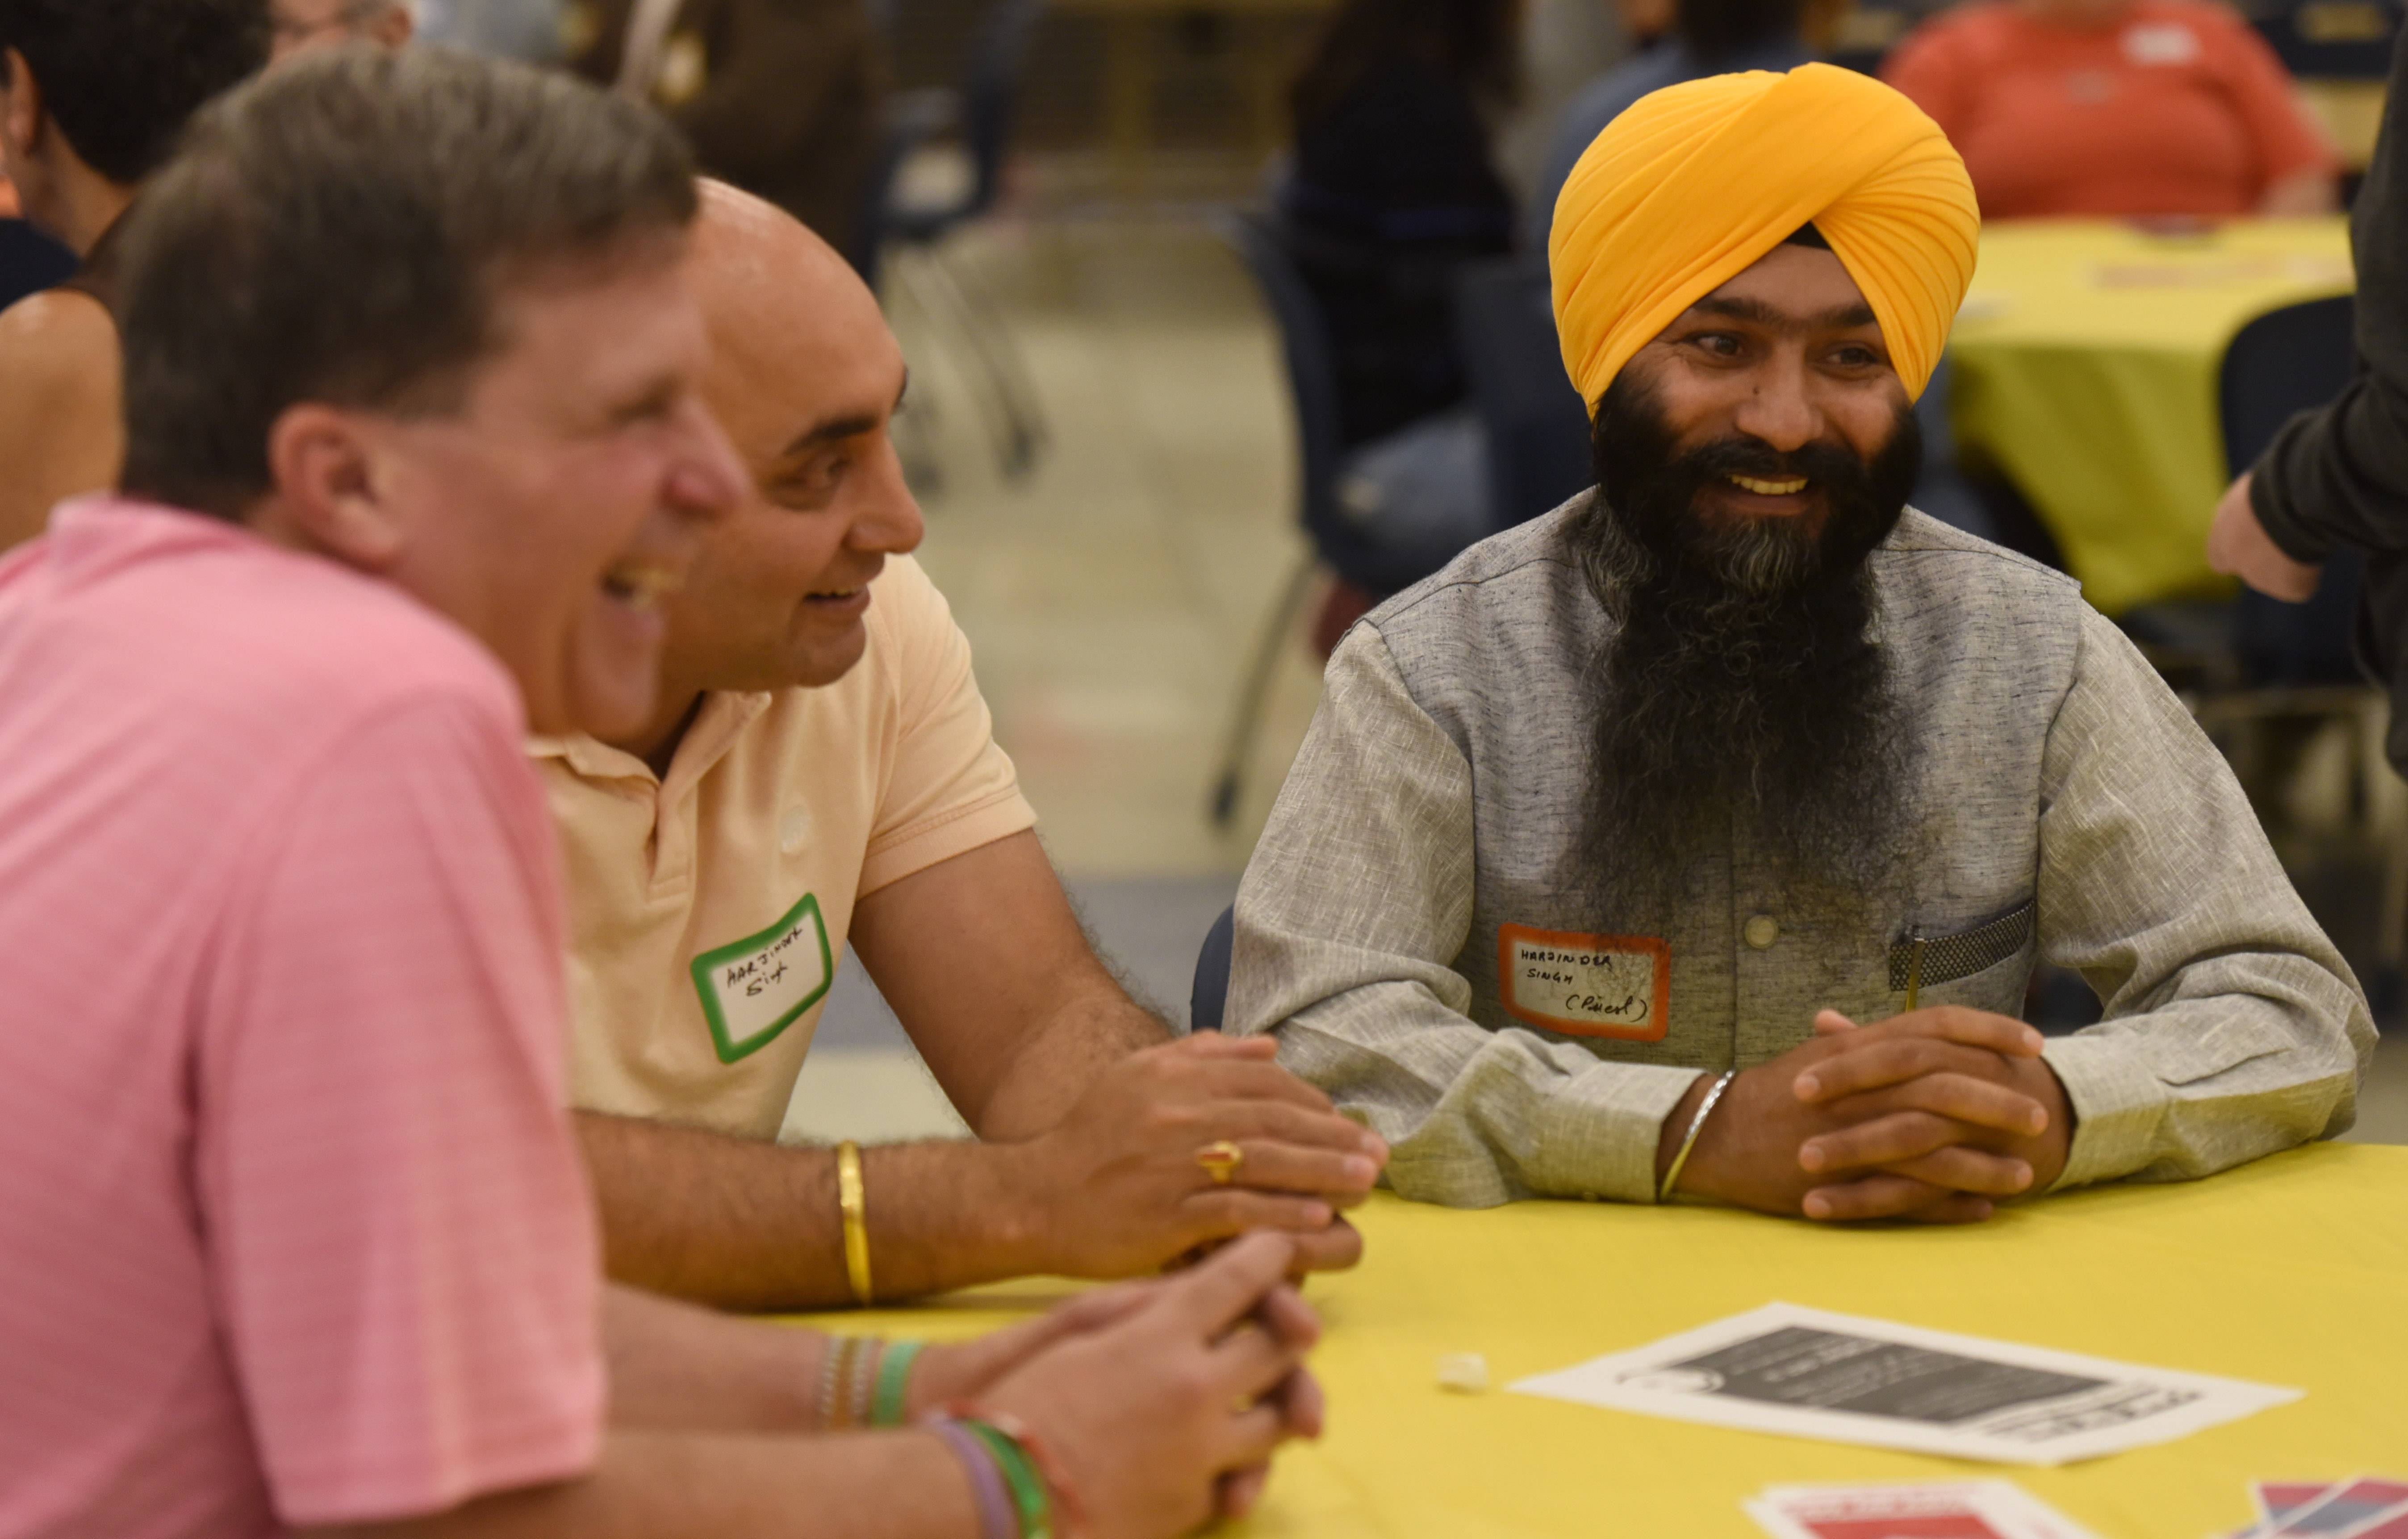 Brett Weiss of Naperville has a conversation with Harjinder (Jindi) Singh and Harjinder Singh, right, who is the priest of the Oak Creek, Wisconsin, Sikh community that was the victim of a white supremacist attack five years ago, during the 6th annual Potluck for Peace at St. Viator High School in Arlington Heights Wednesday.